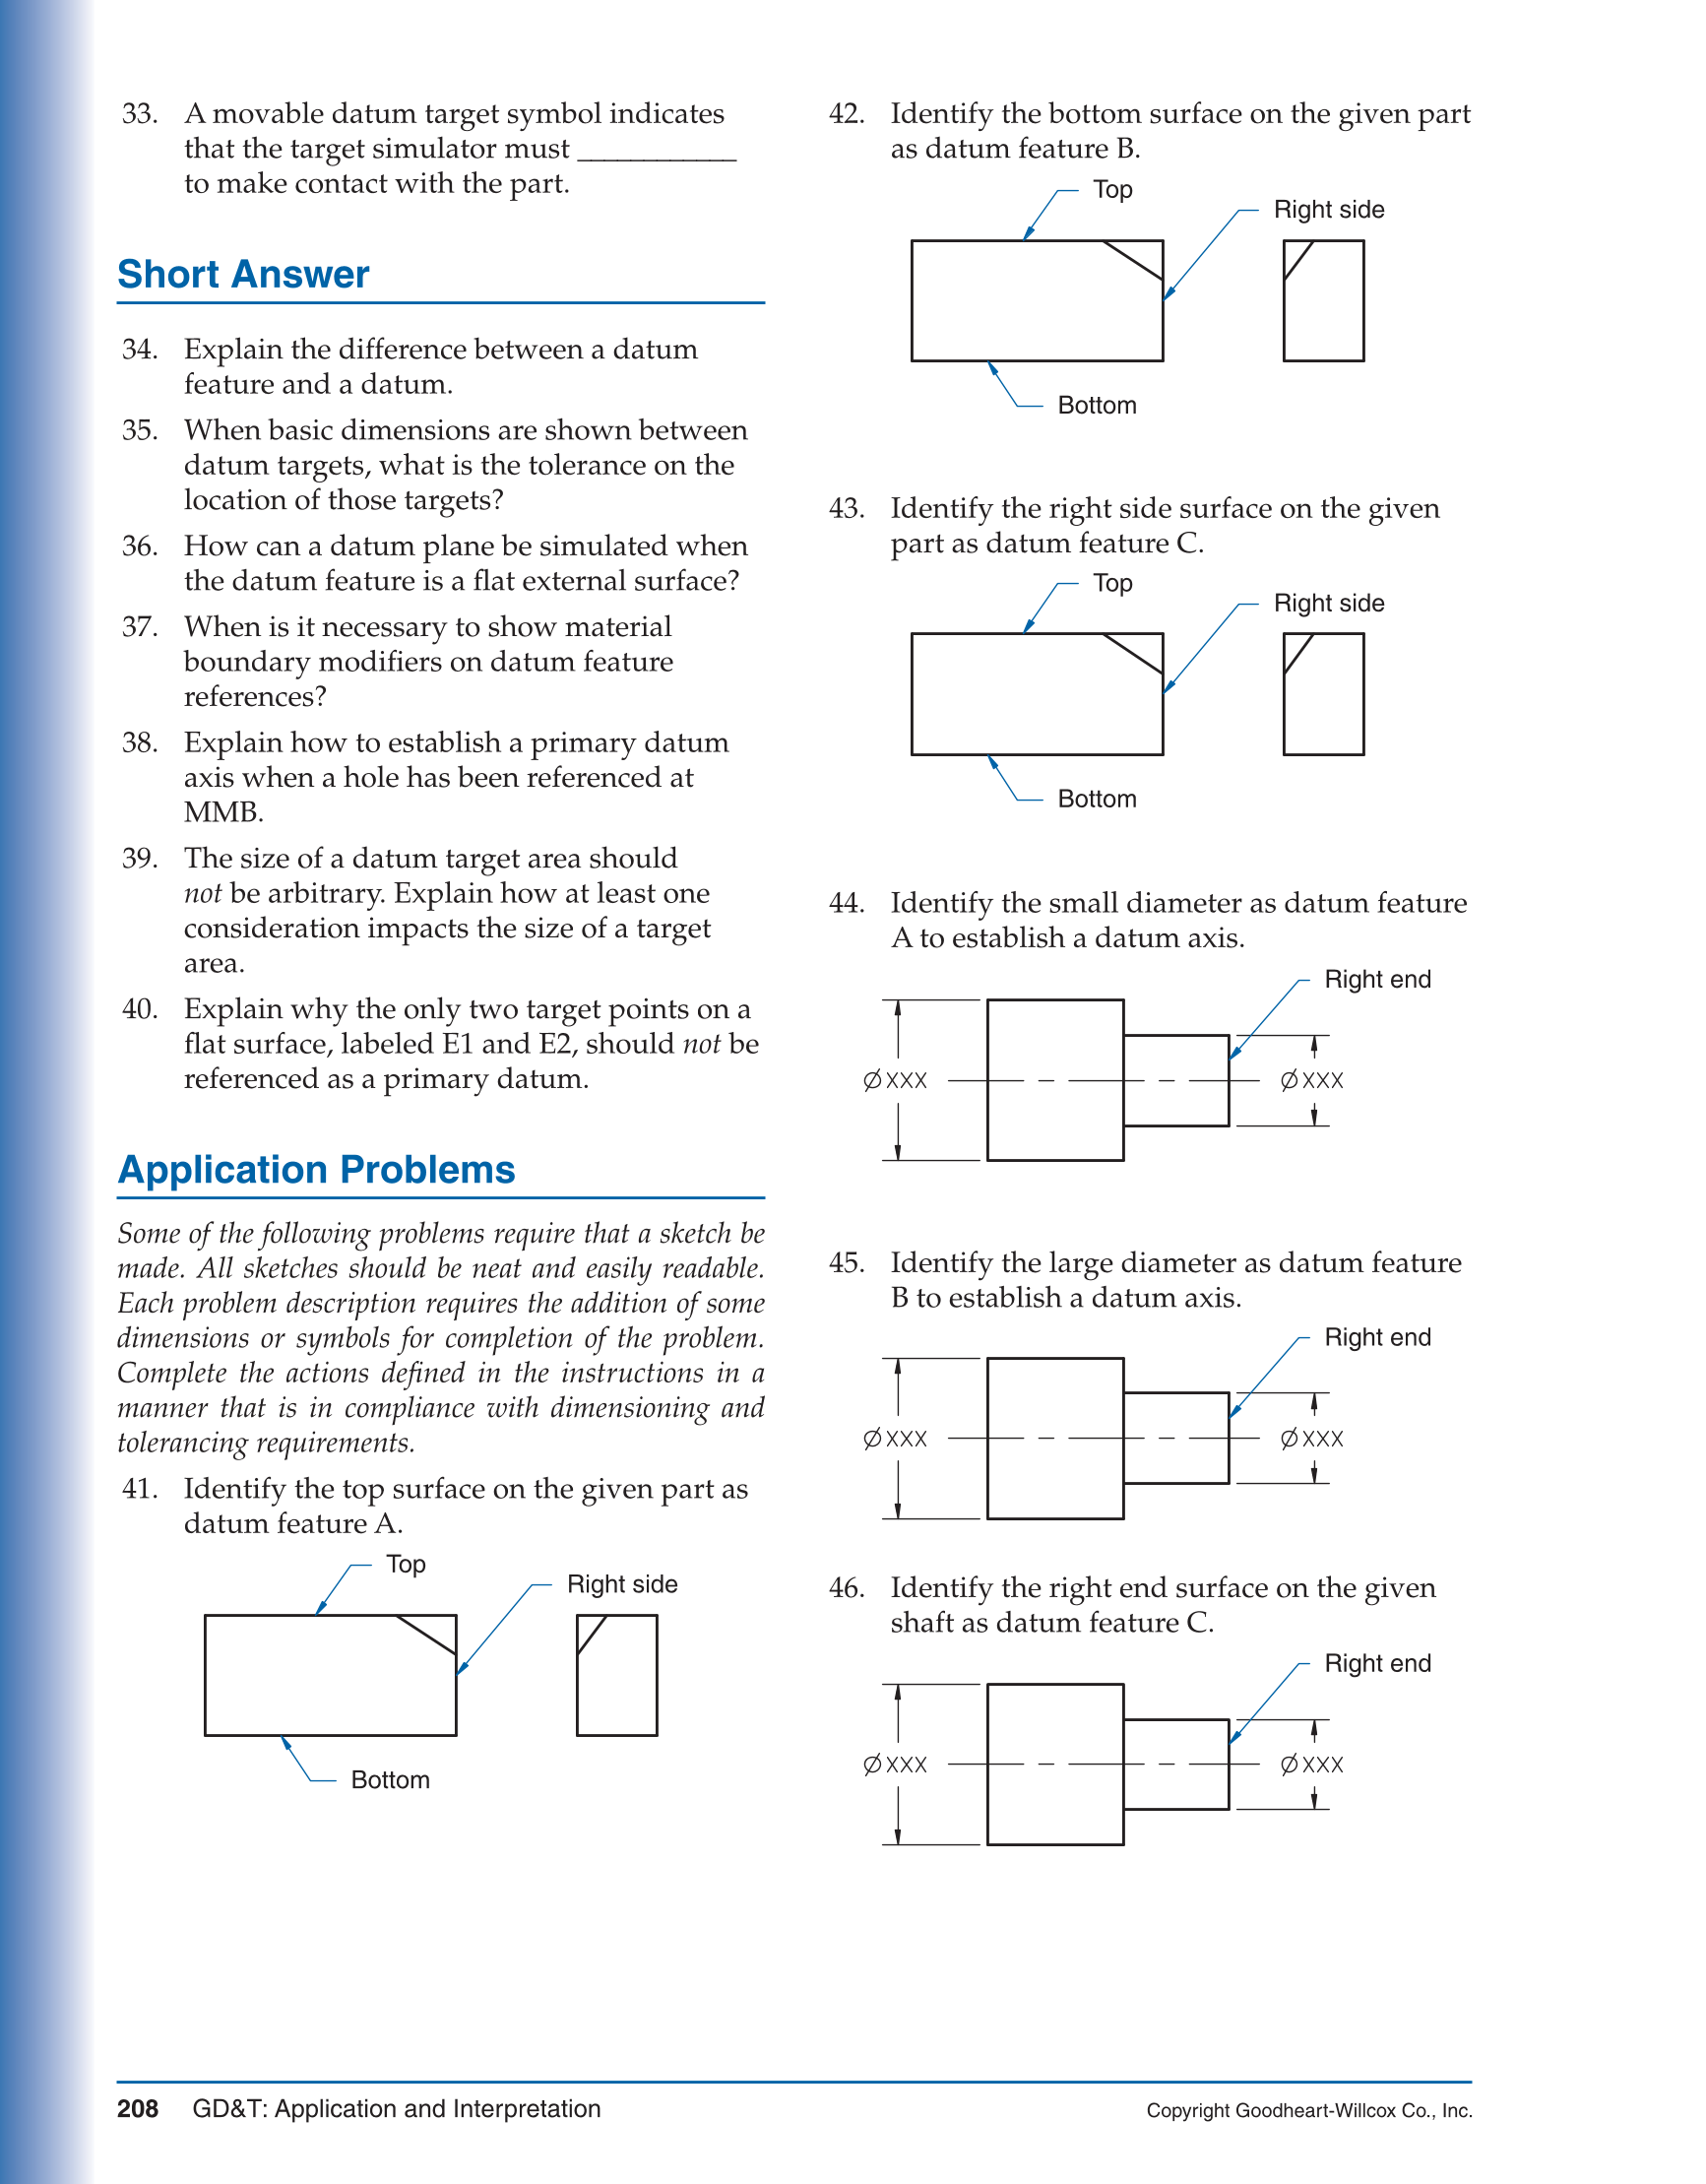 Printable Gdt Application And Interpretation 6th Edition Page 208